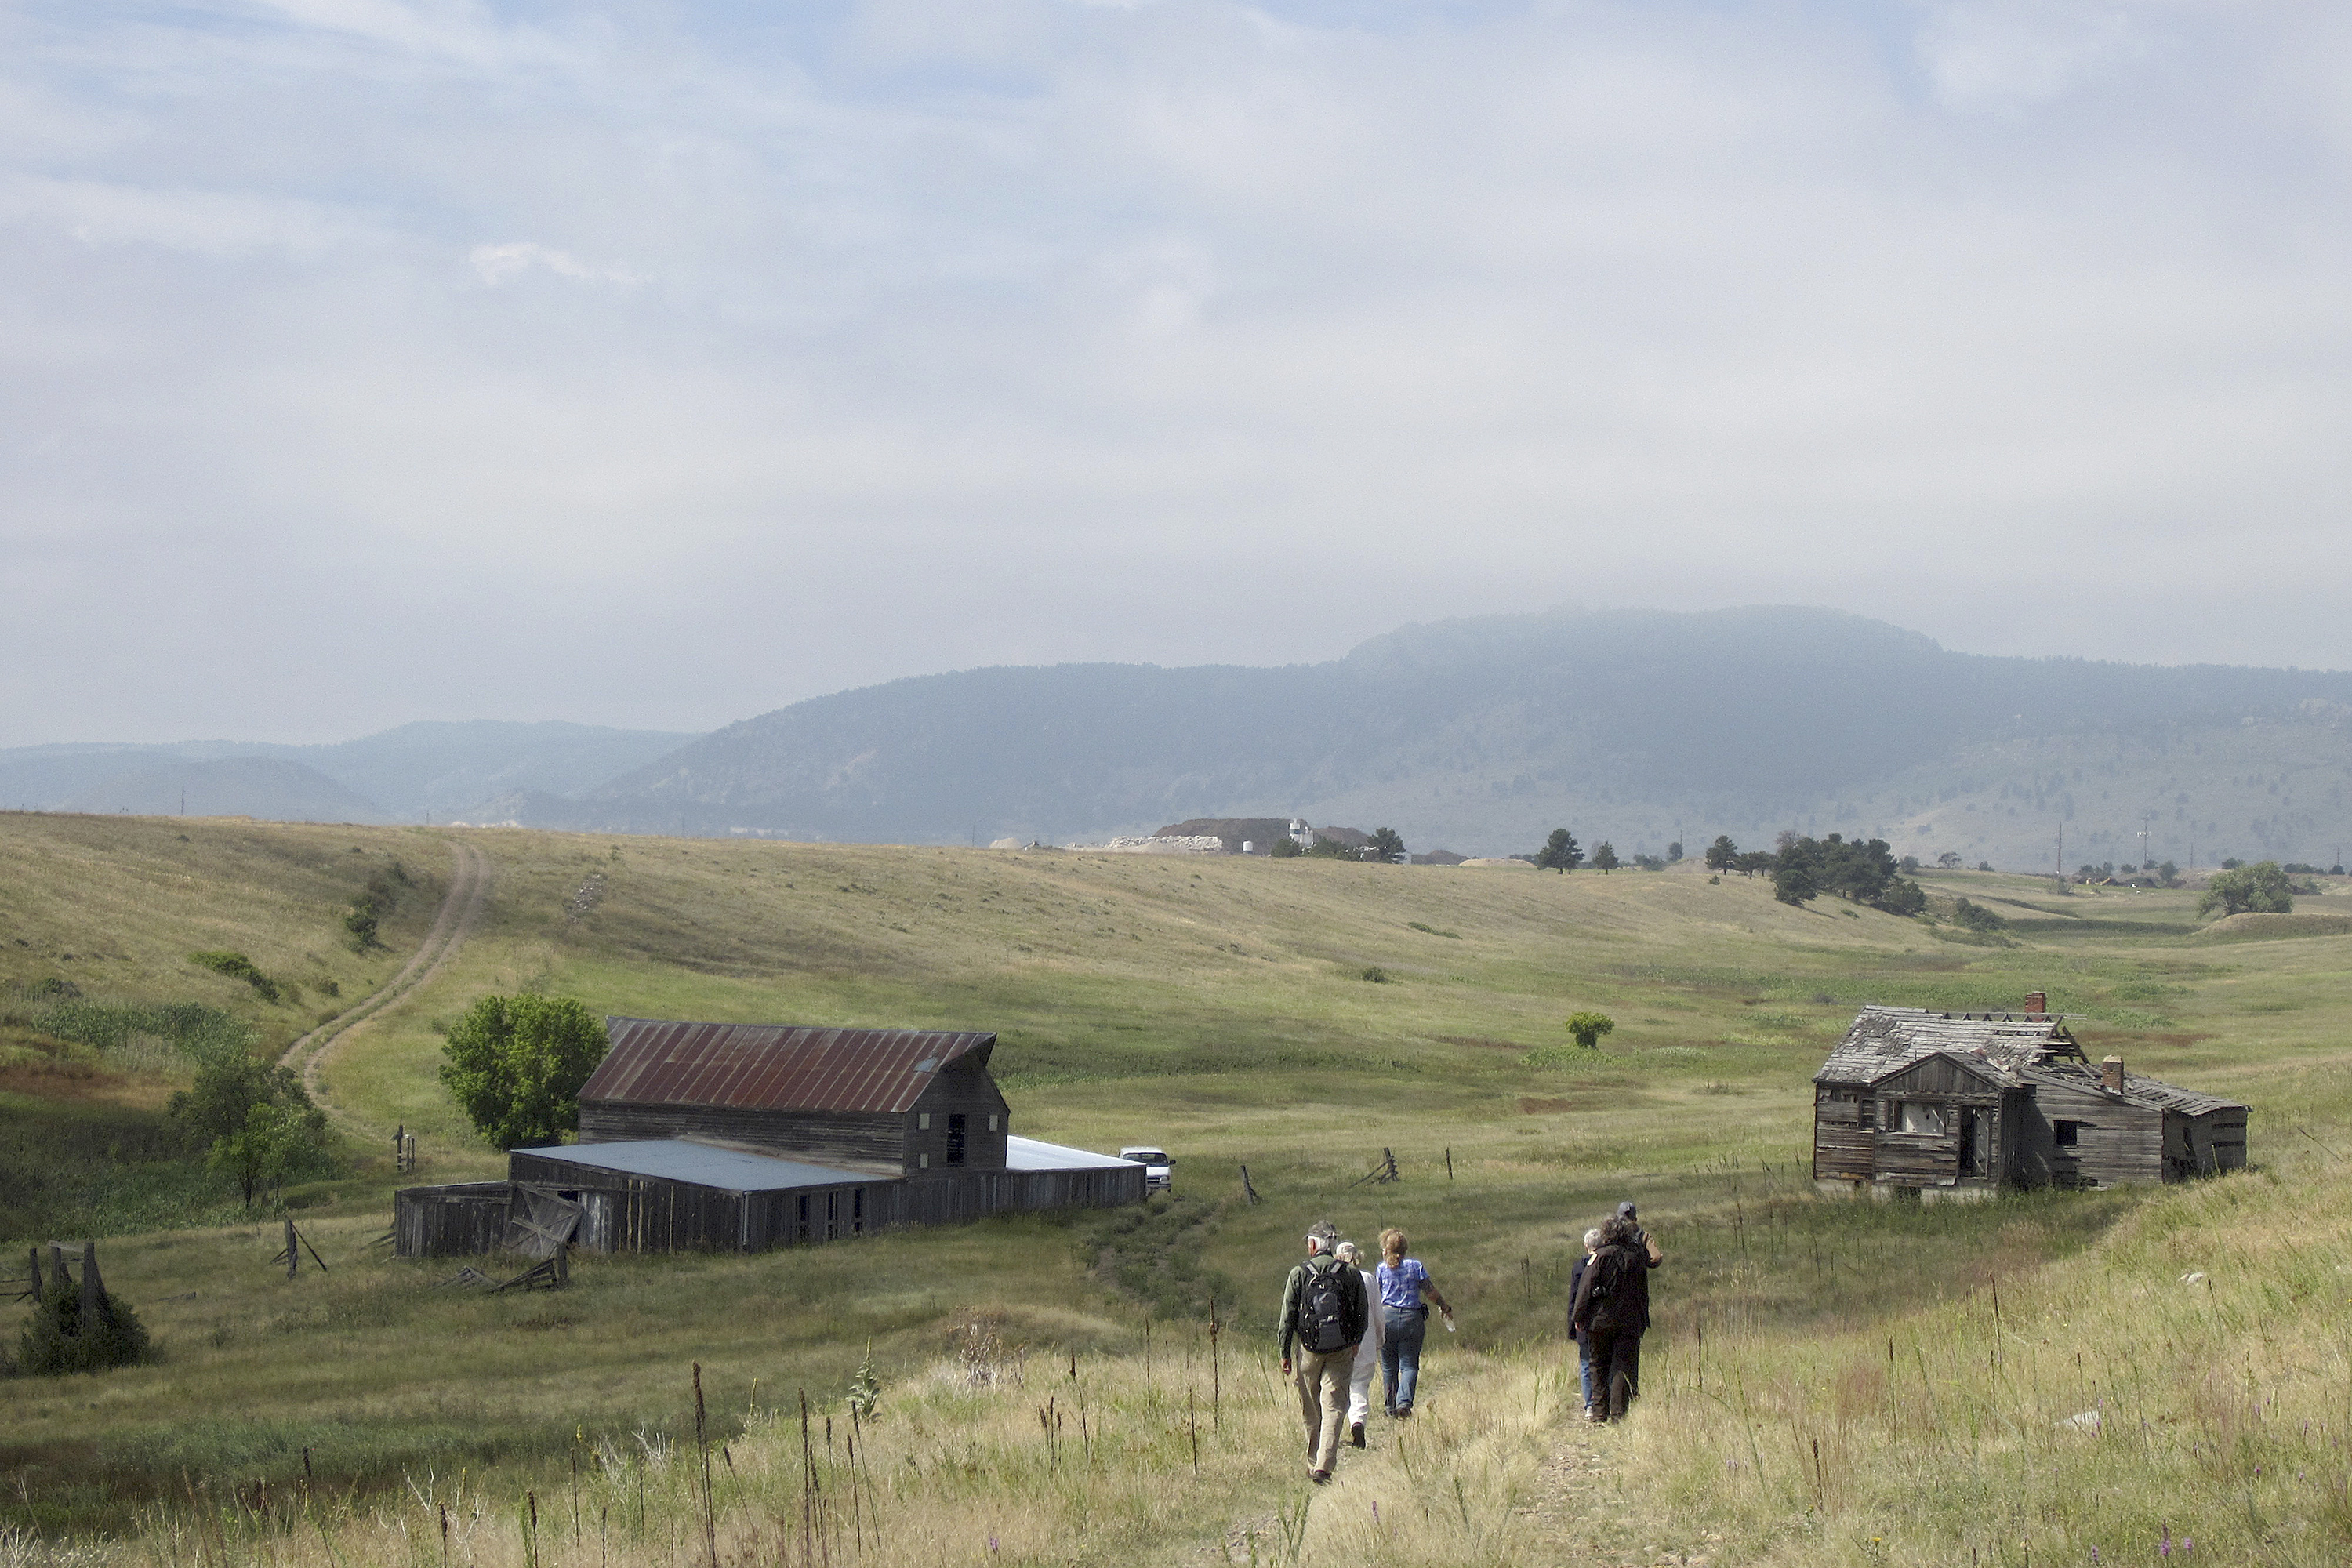 Visitors approach a former ranch house and barn during a guided hike on the Rocky Flats National Wildlife Refuge near Denver.